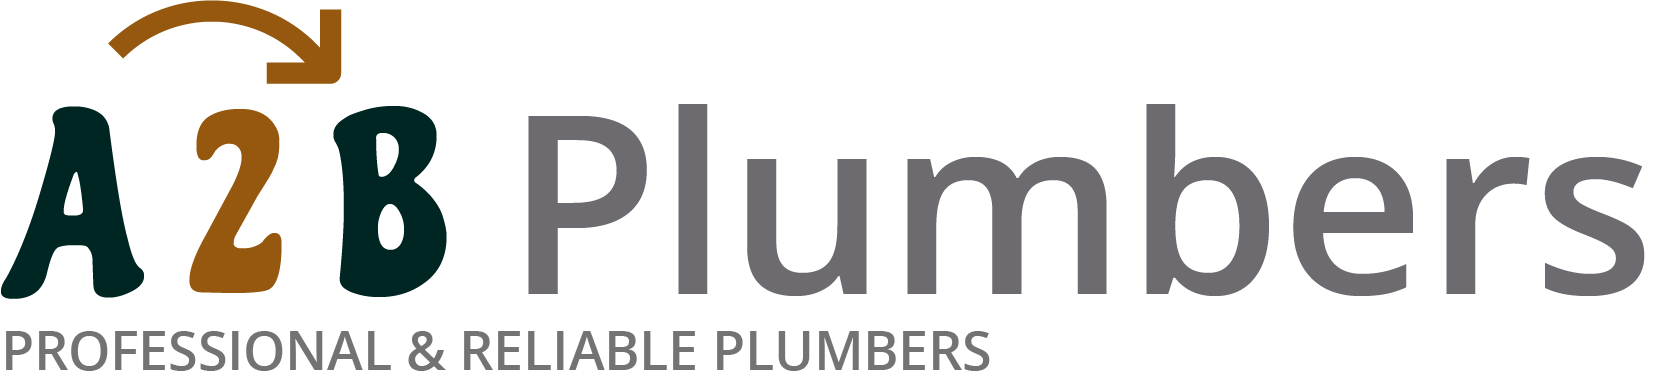 If you need a boiler installed, a radiator repaired or a leaking tap fixed, call us now - we provide services for properties in Dunstable and the local area.